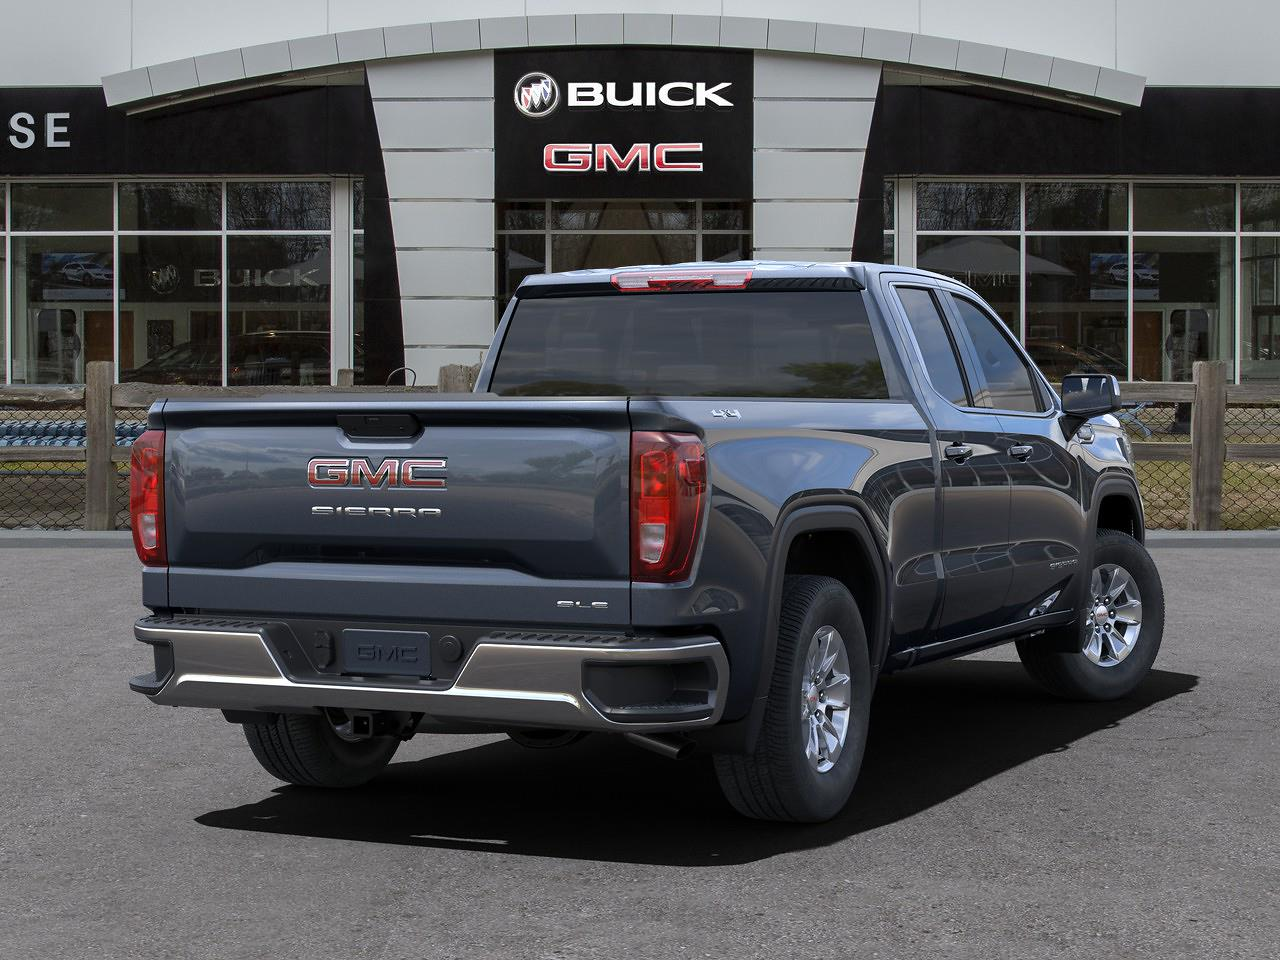 2021 GMC Sierra 1500 Double Cab 4x4, Pickup #SR1290 - photo 2